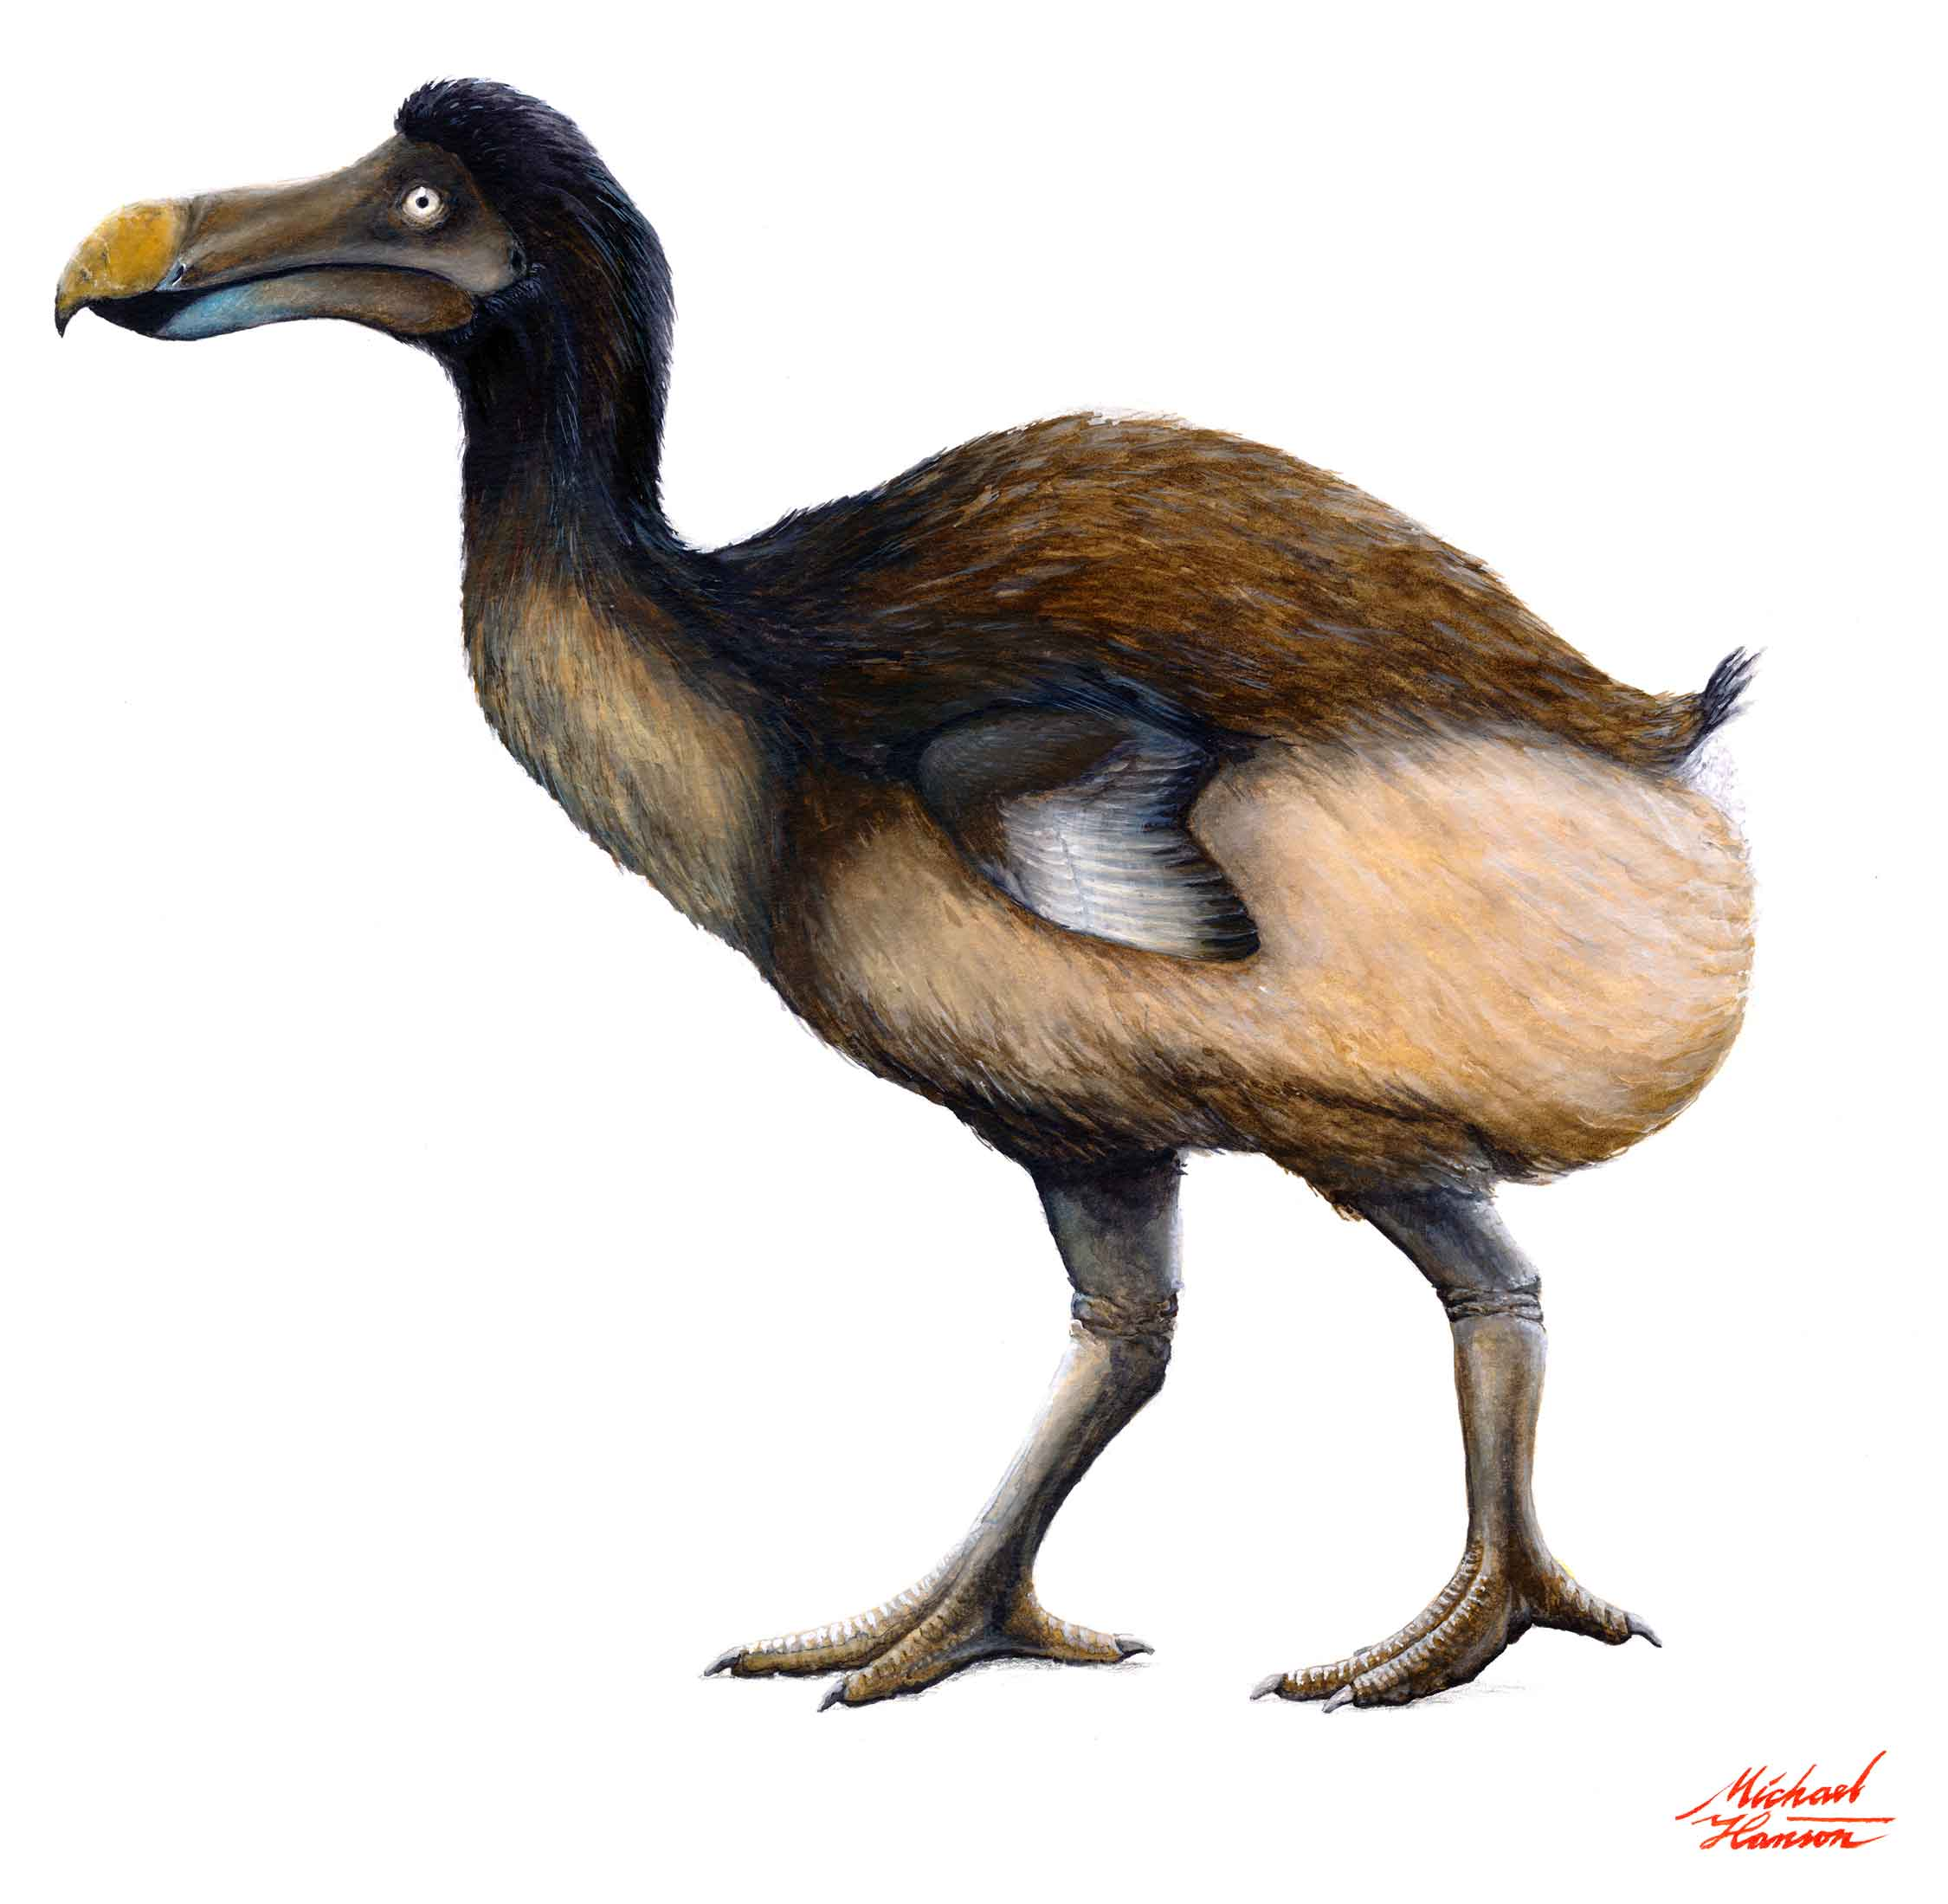 Dodo painting by Michael Hanson